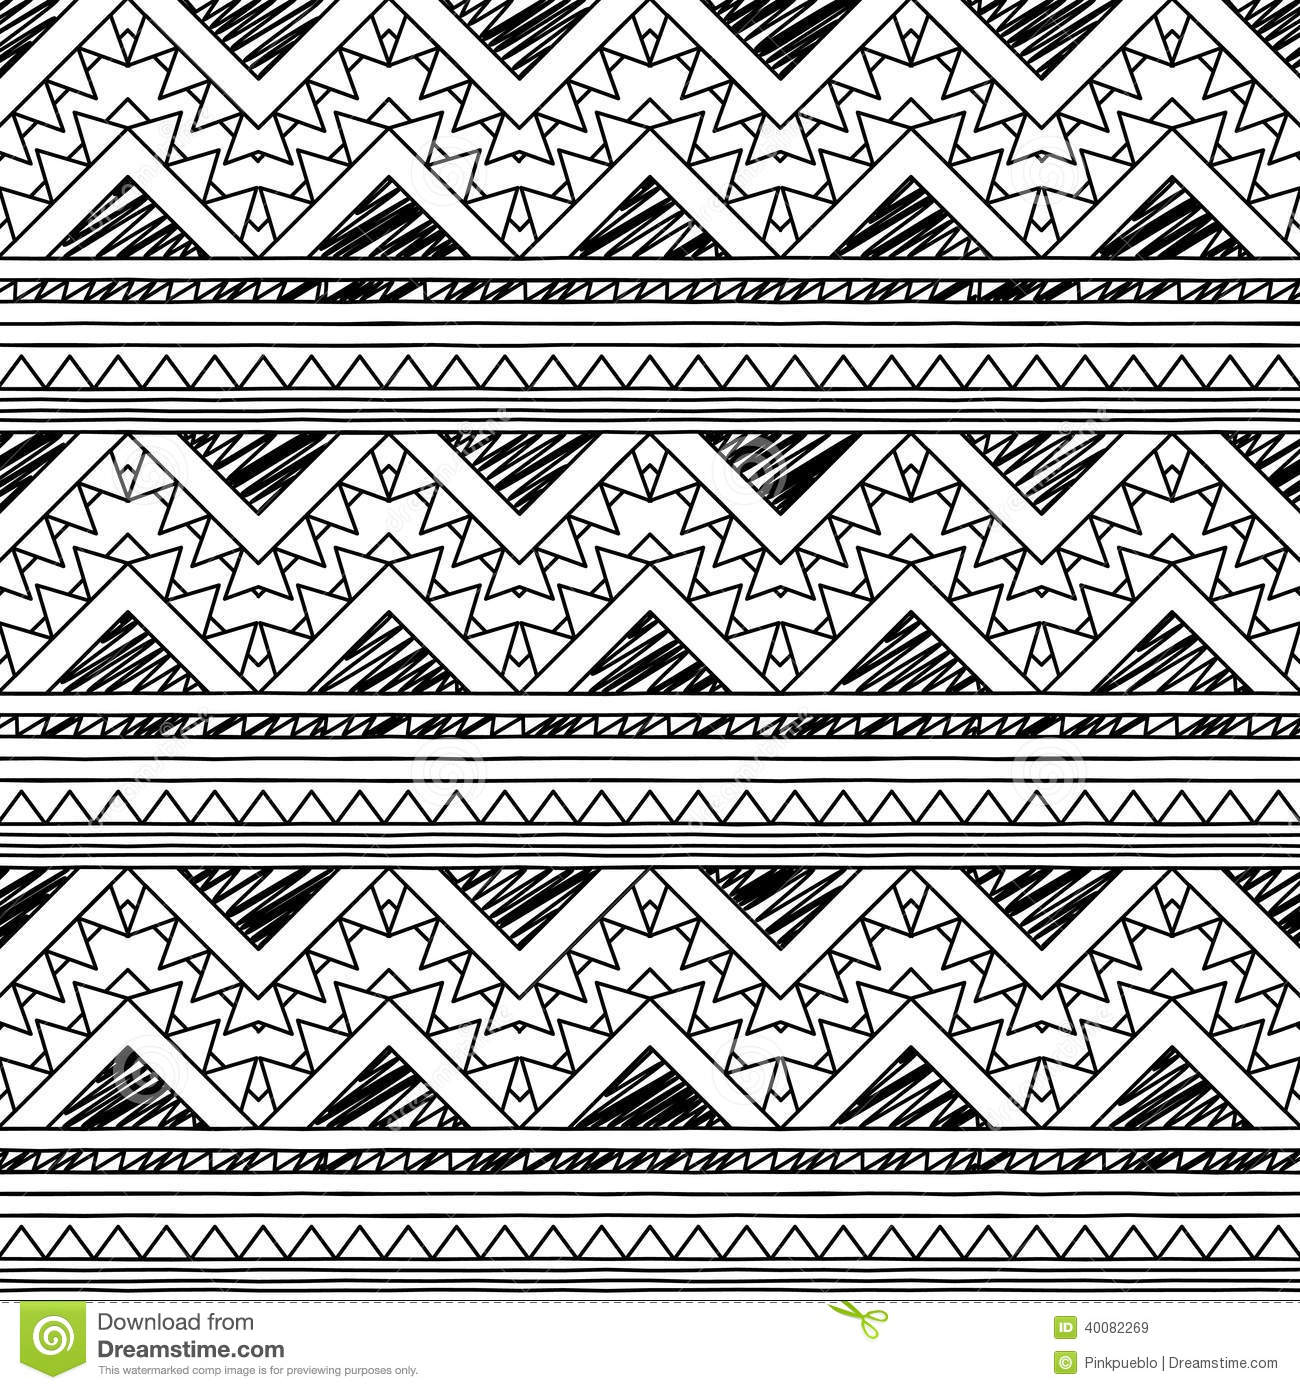 Tribal Pattern Wallpaper Black And White